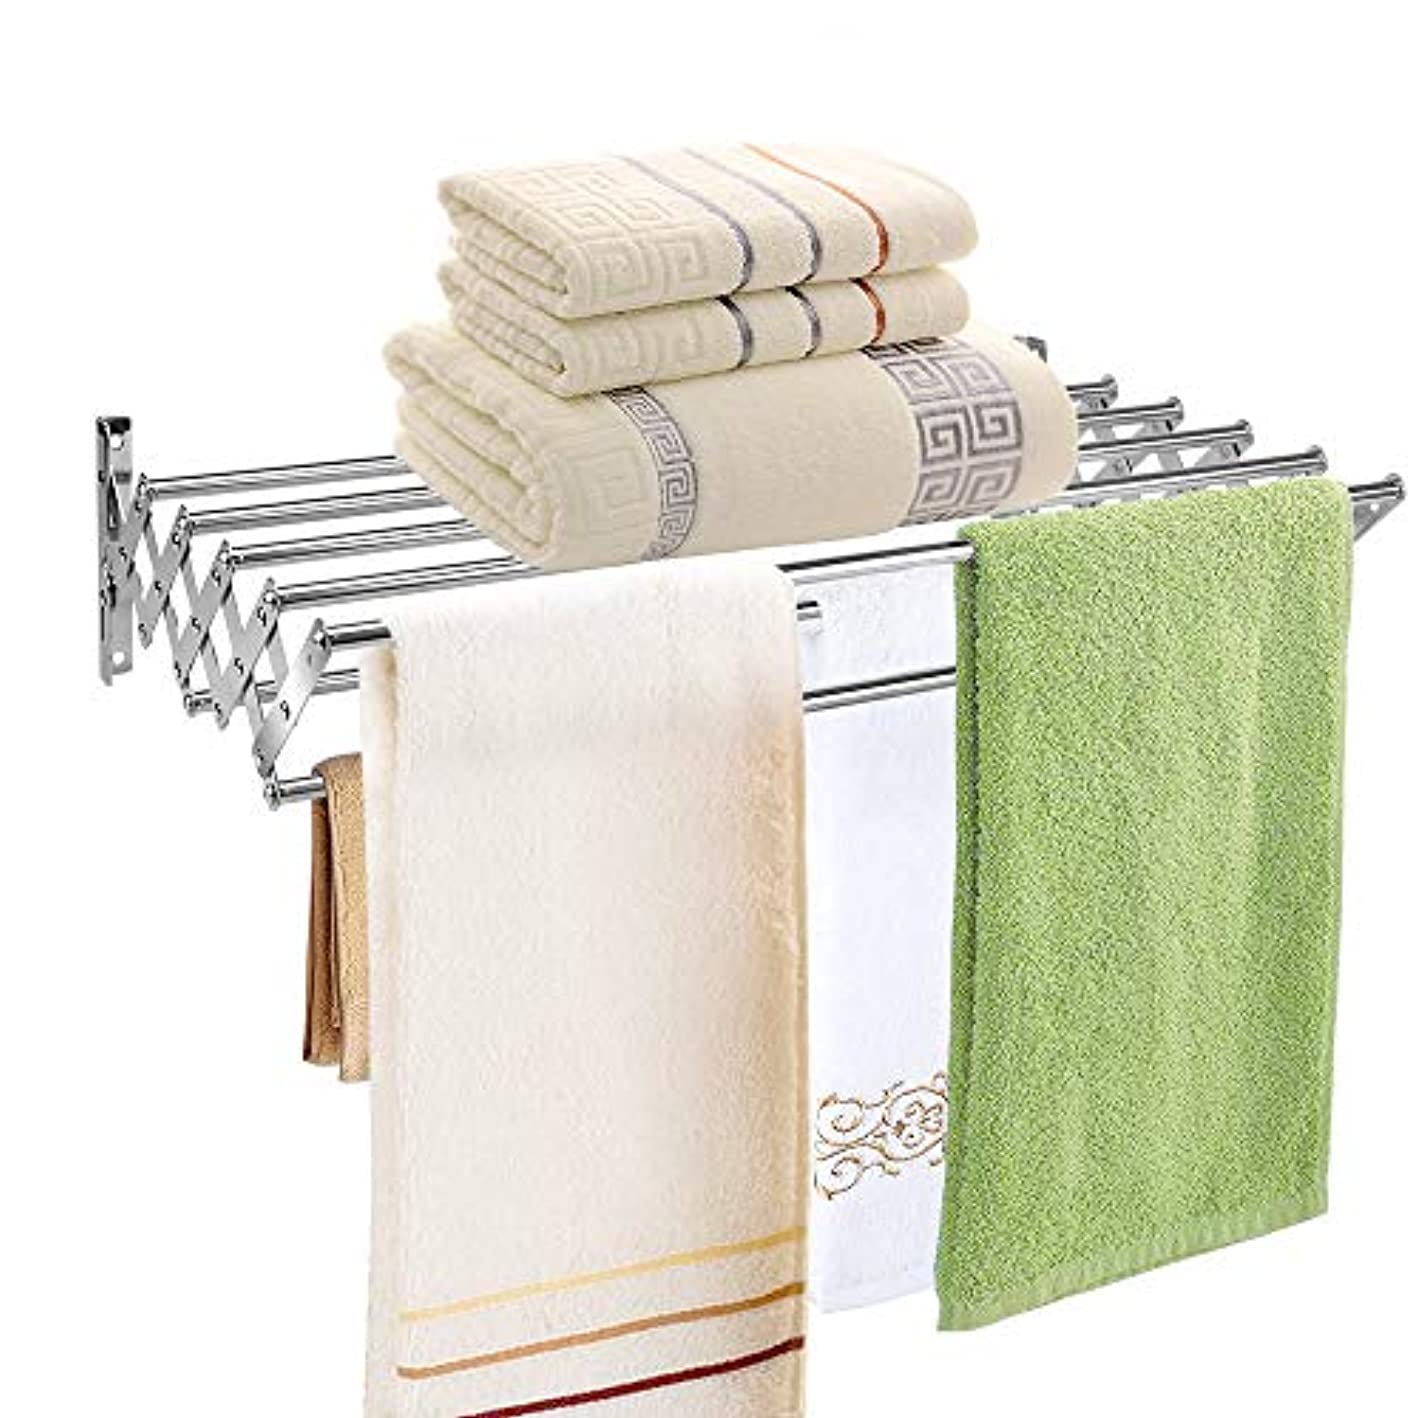 Mai Hongda Accordion Wall Mounted Drying Rack Stainless Steel Clothes Retractable Folding Accordian Wall Hanger Hanging Towel Holder 60lb Capacity for Laundry Bathroom No Drilling (24'' Standard)